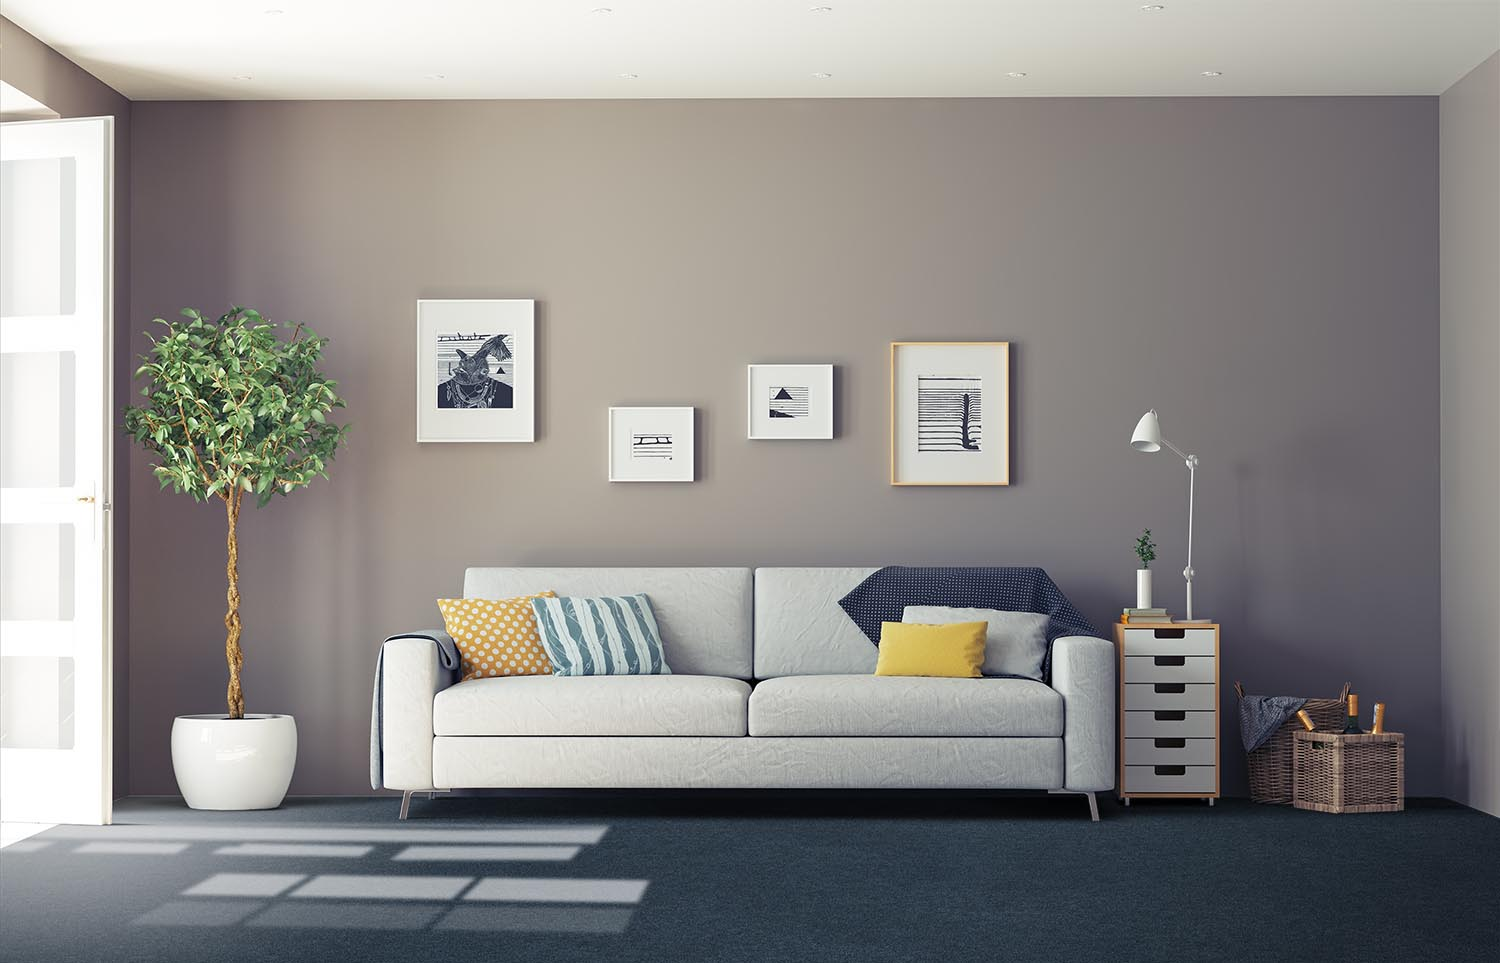 Softology - S201 - Suave classic living room